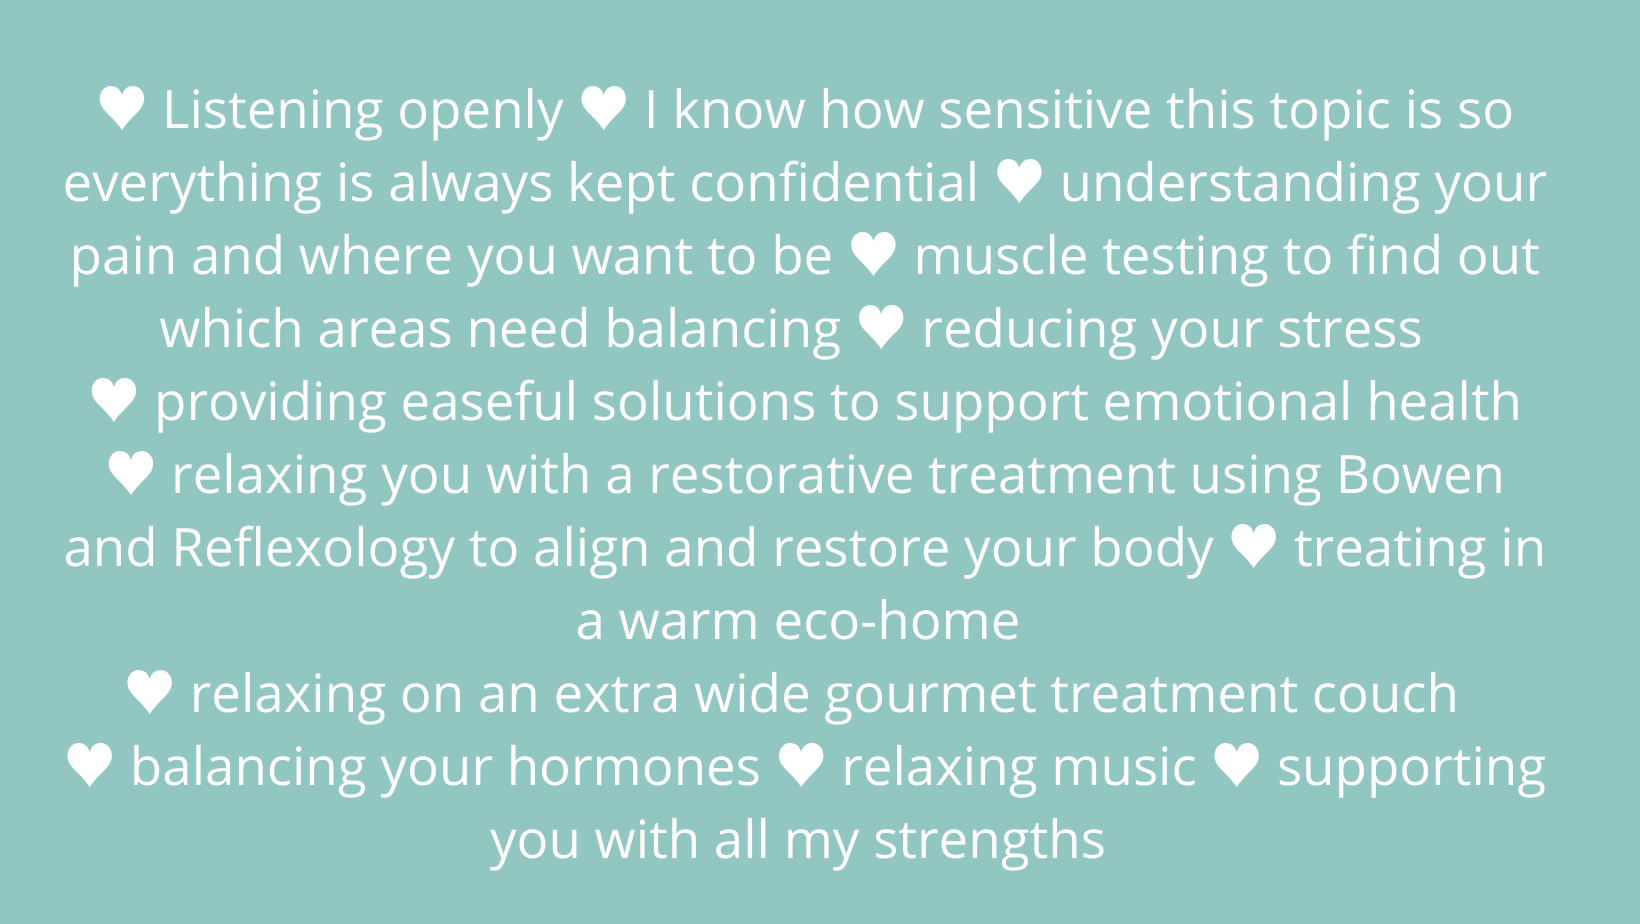 All the ways I take care of your hormones